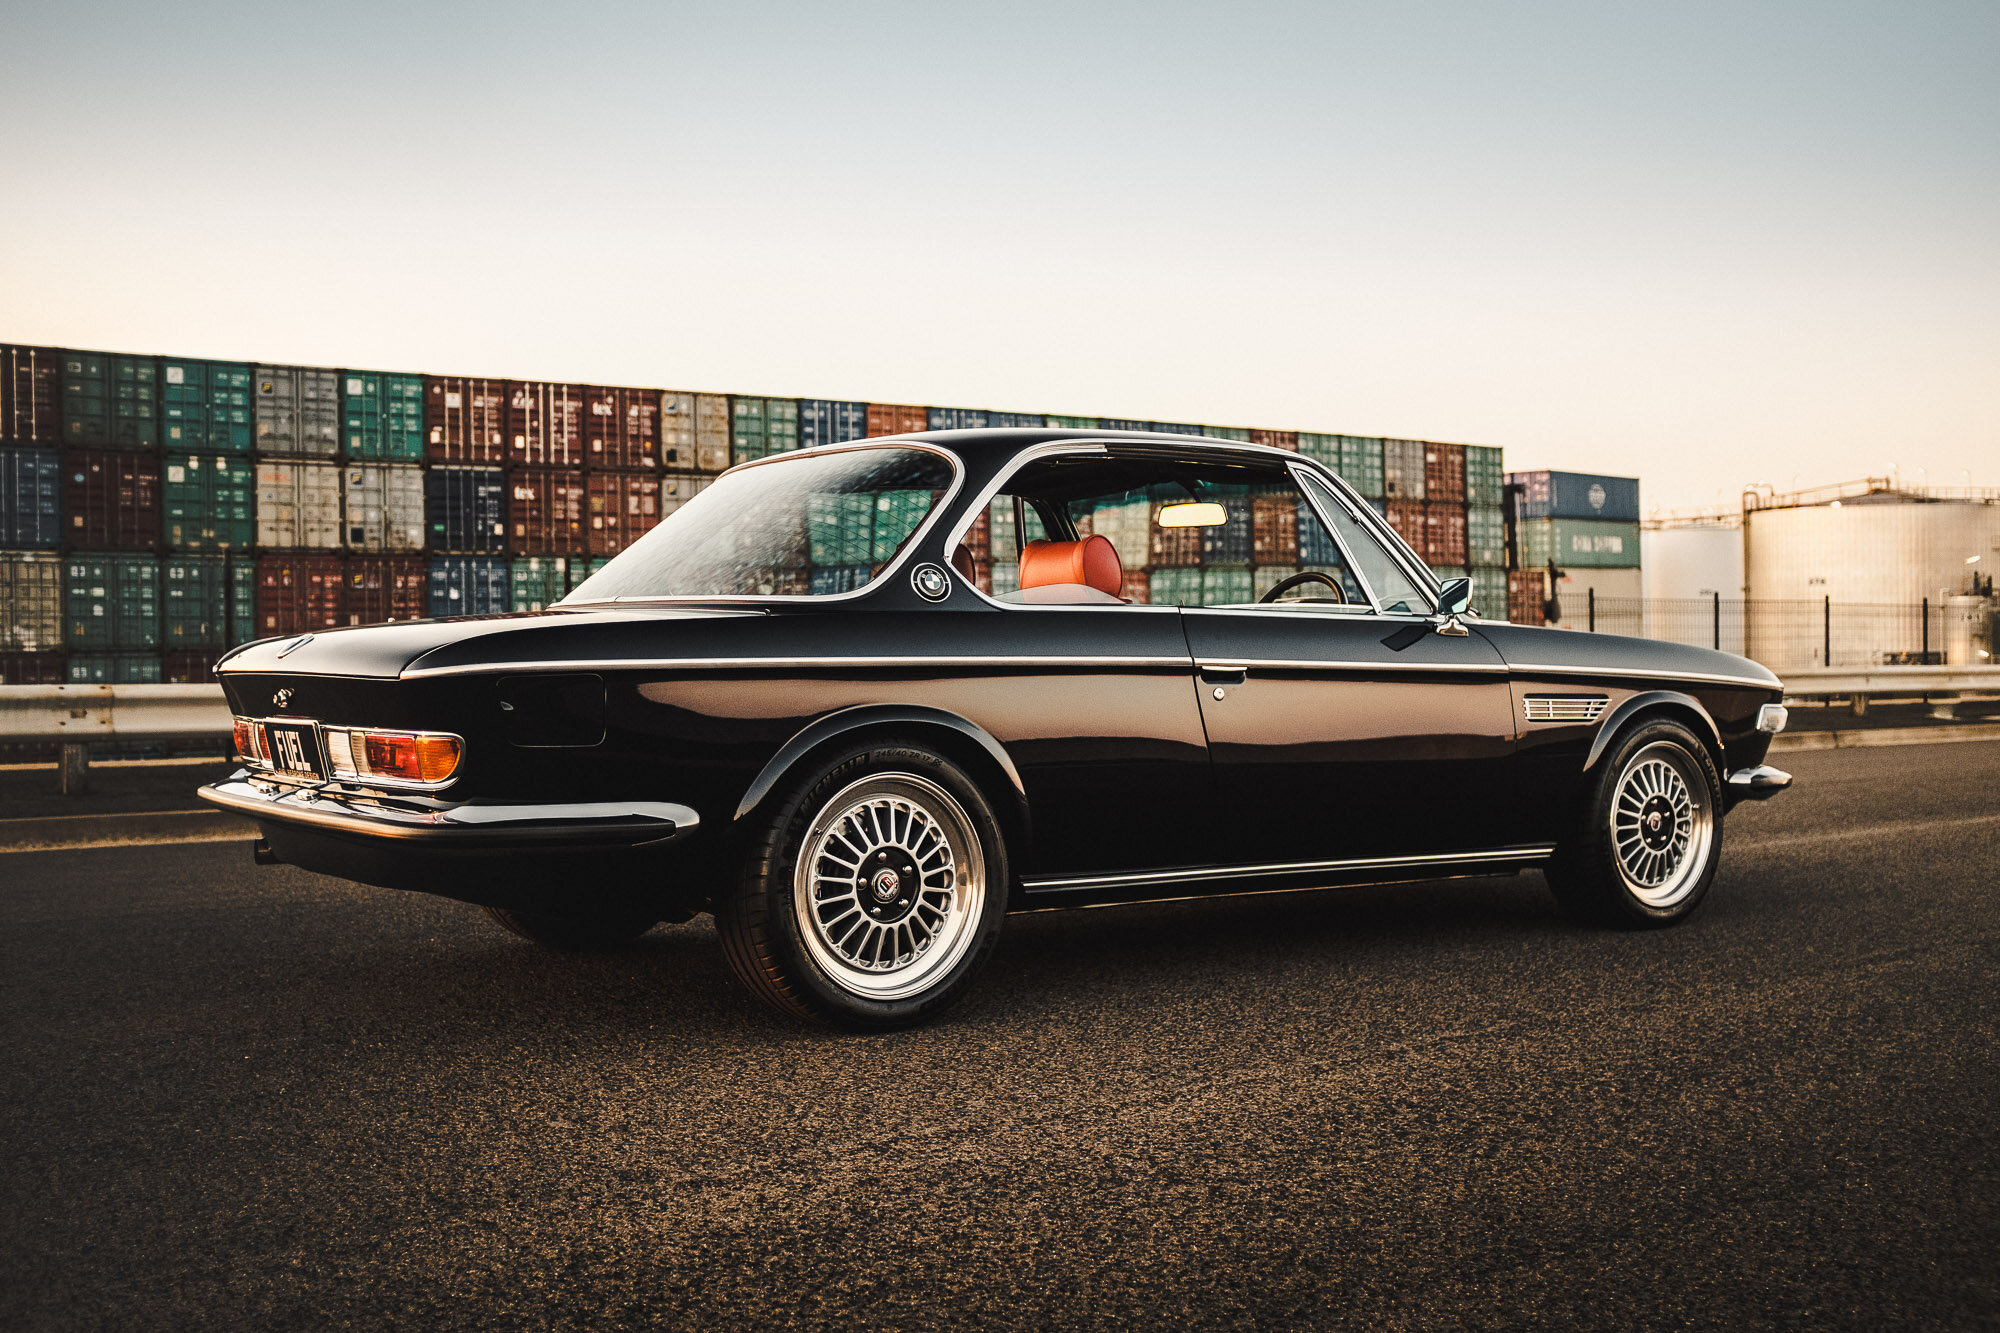 1970 Bmw E9 2800cs Sell Everything Car Rave Cool Cars For Sale Jdm Muscle Classic Retro